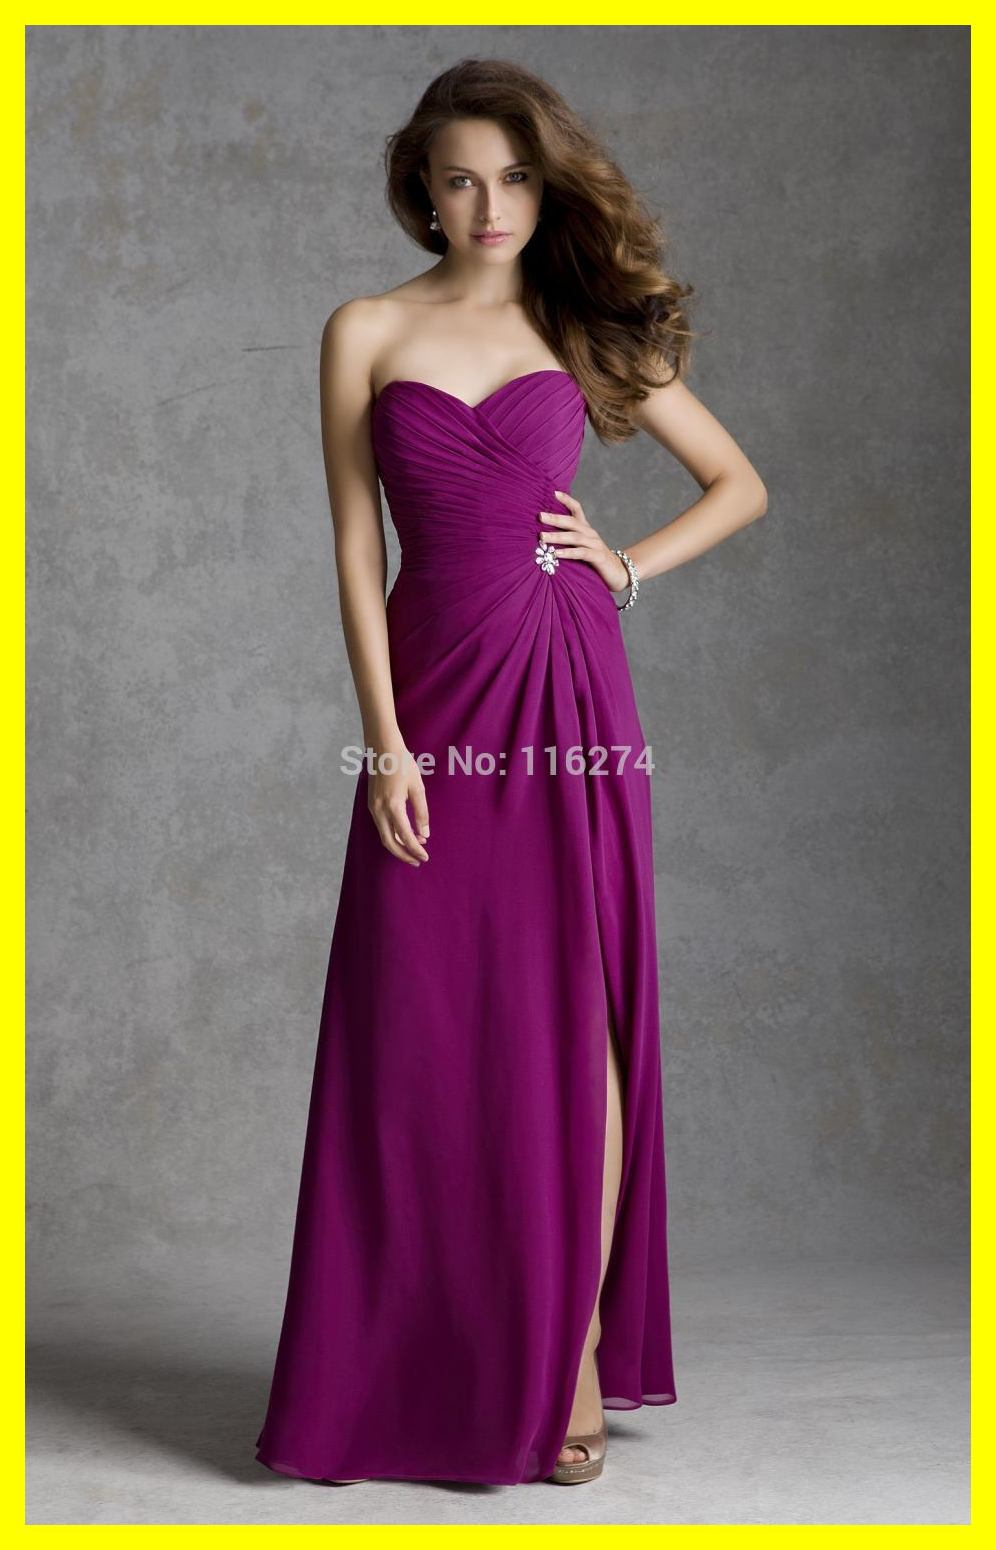 Design Your Own Bridesmaid Dresses Online Choice Image - Braidsmaid ...